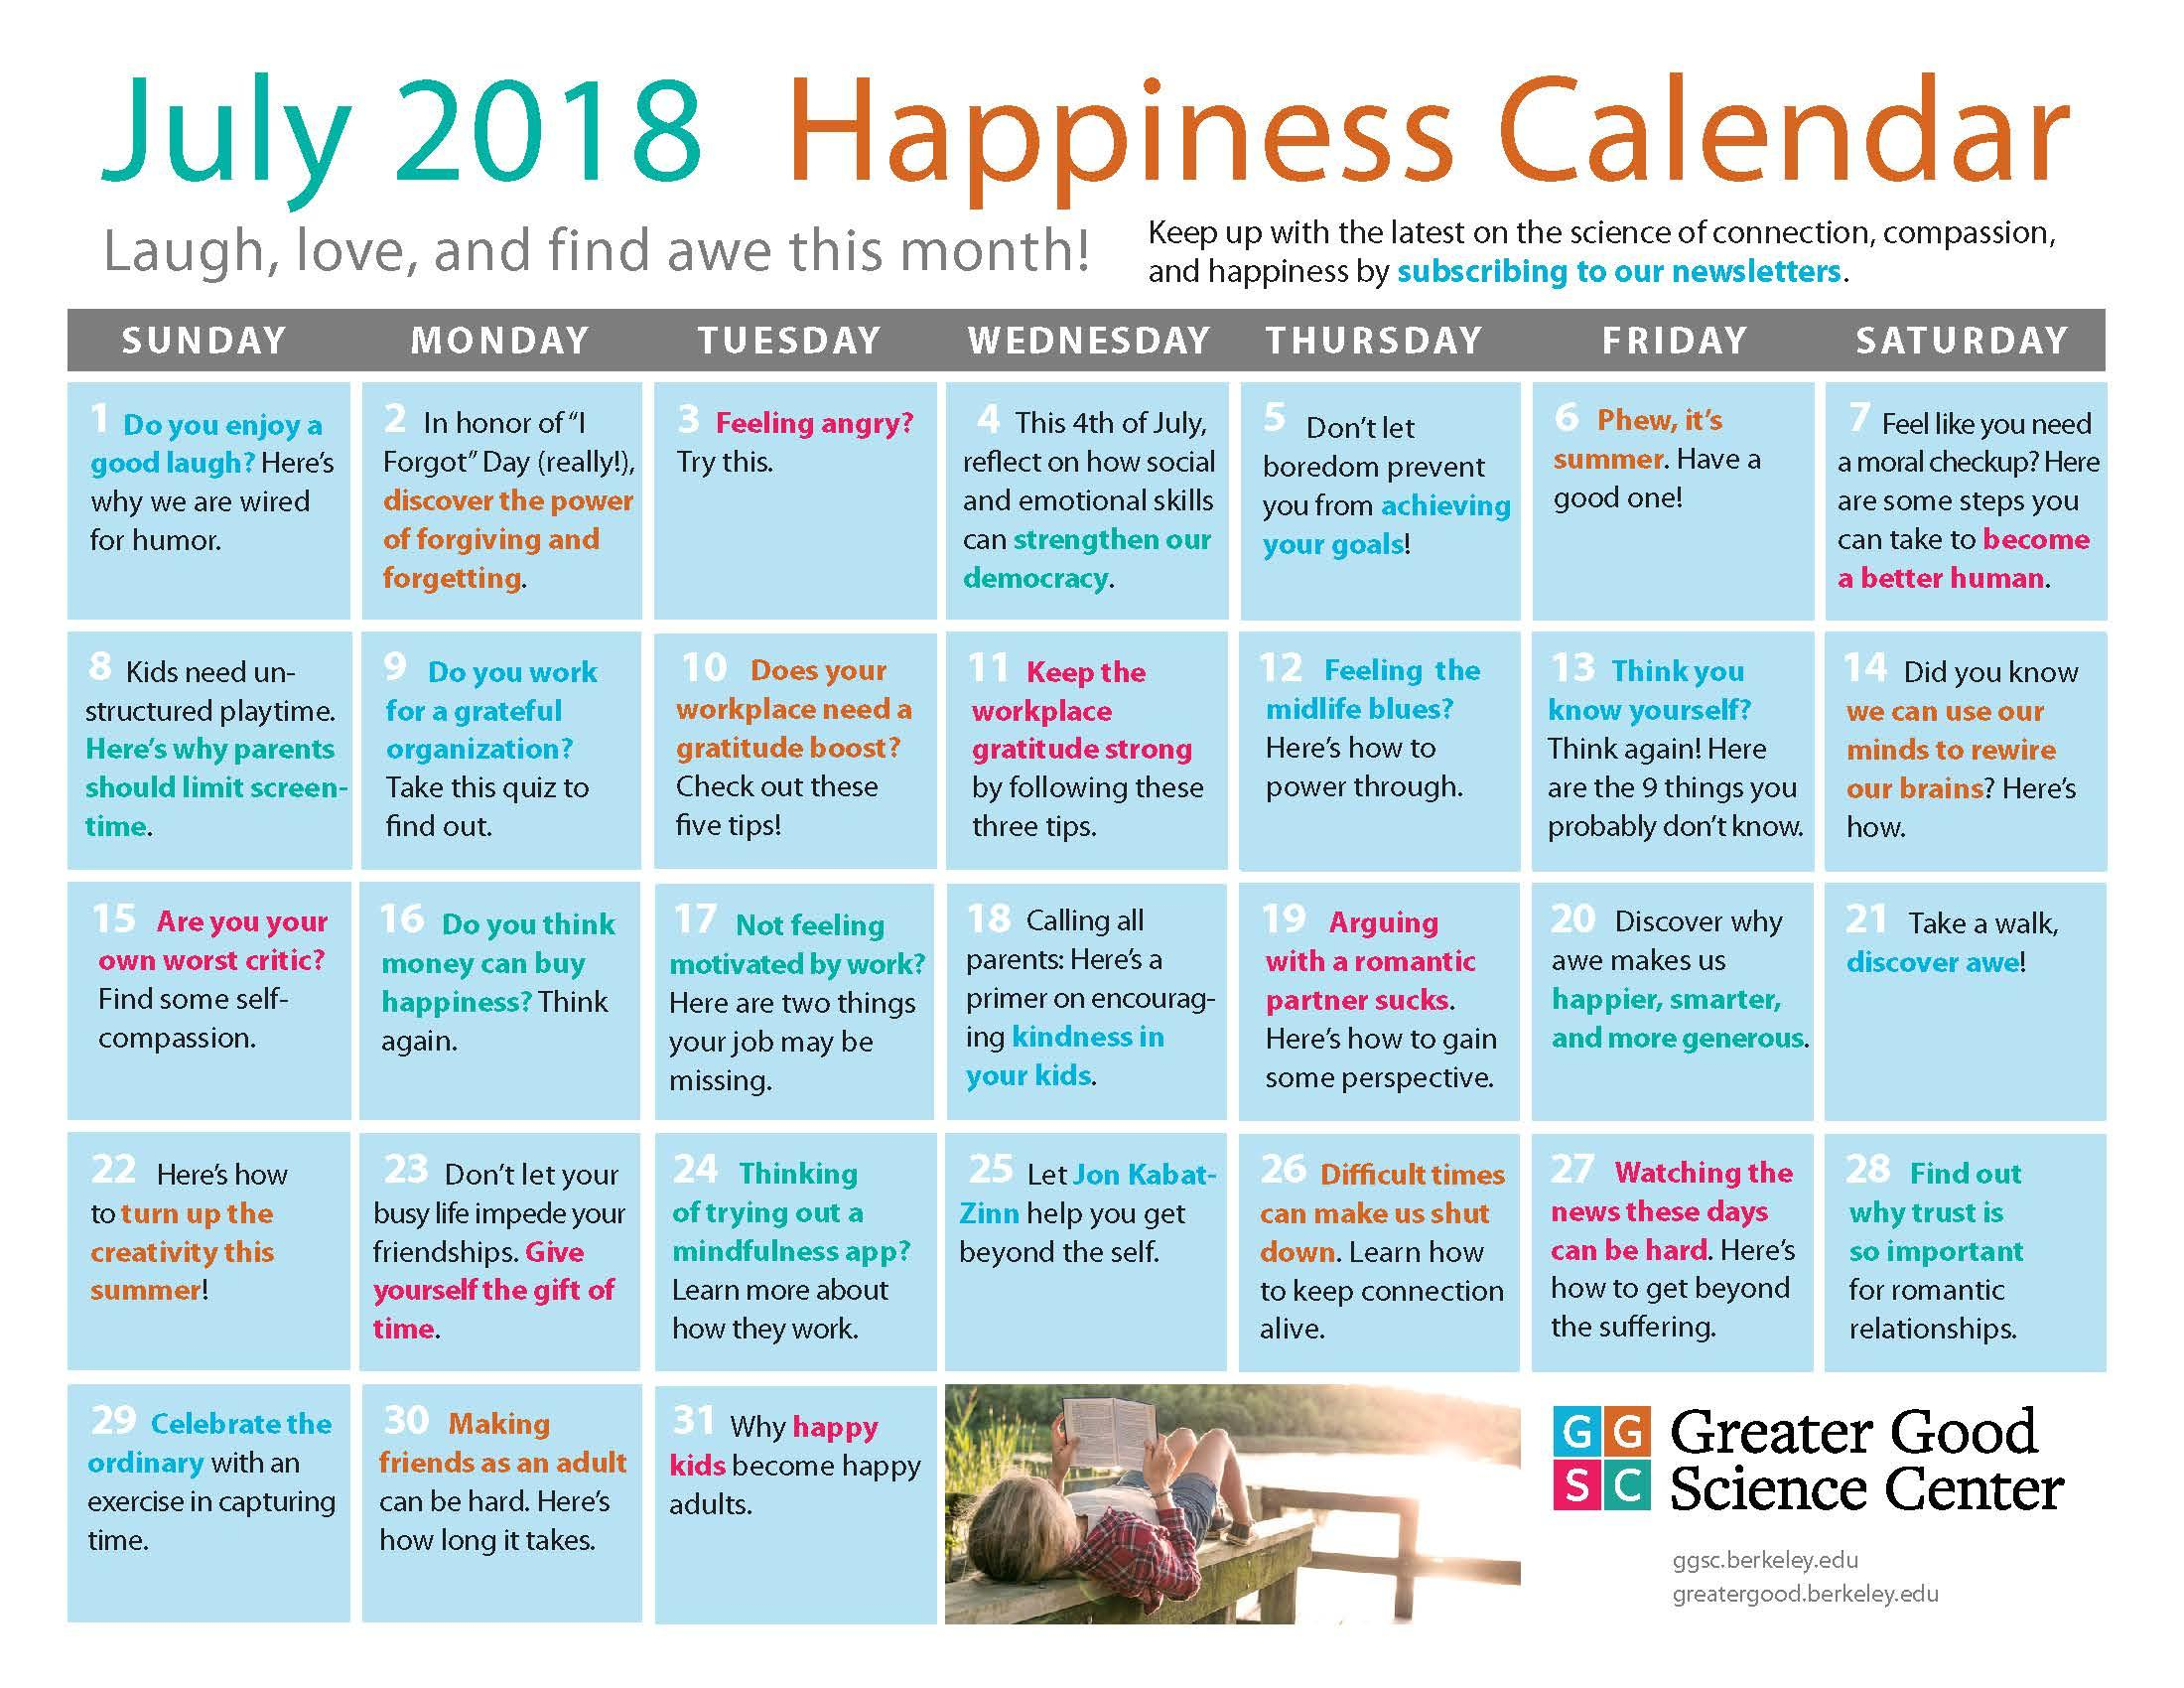 July 2018 Happiness Calendar